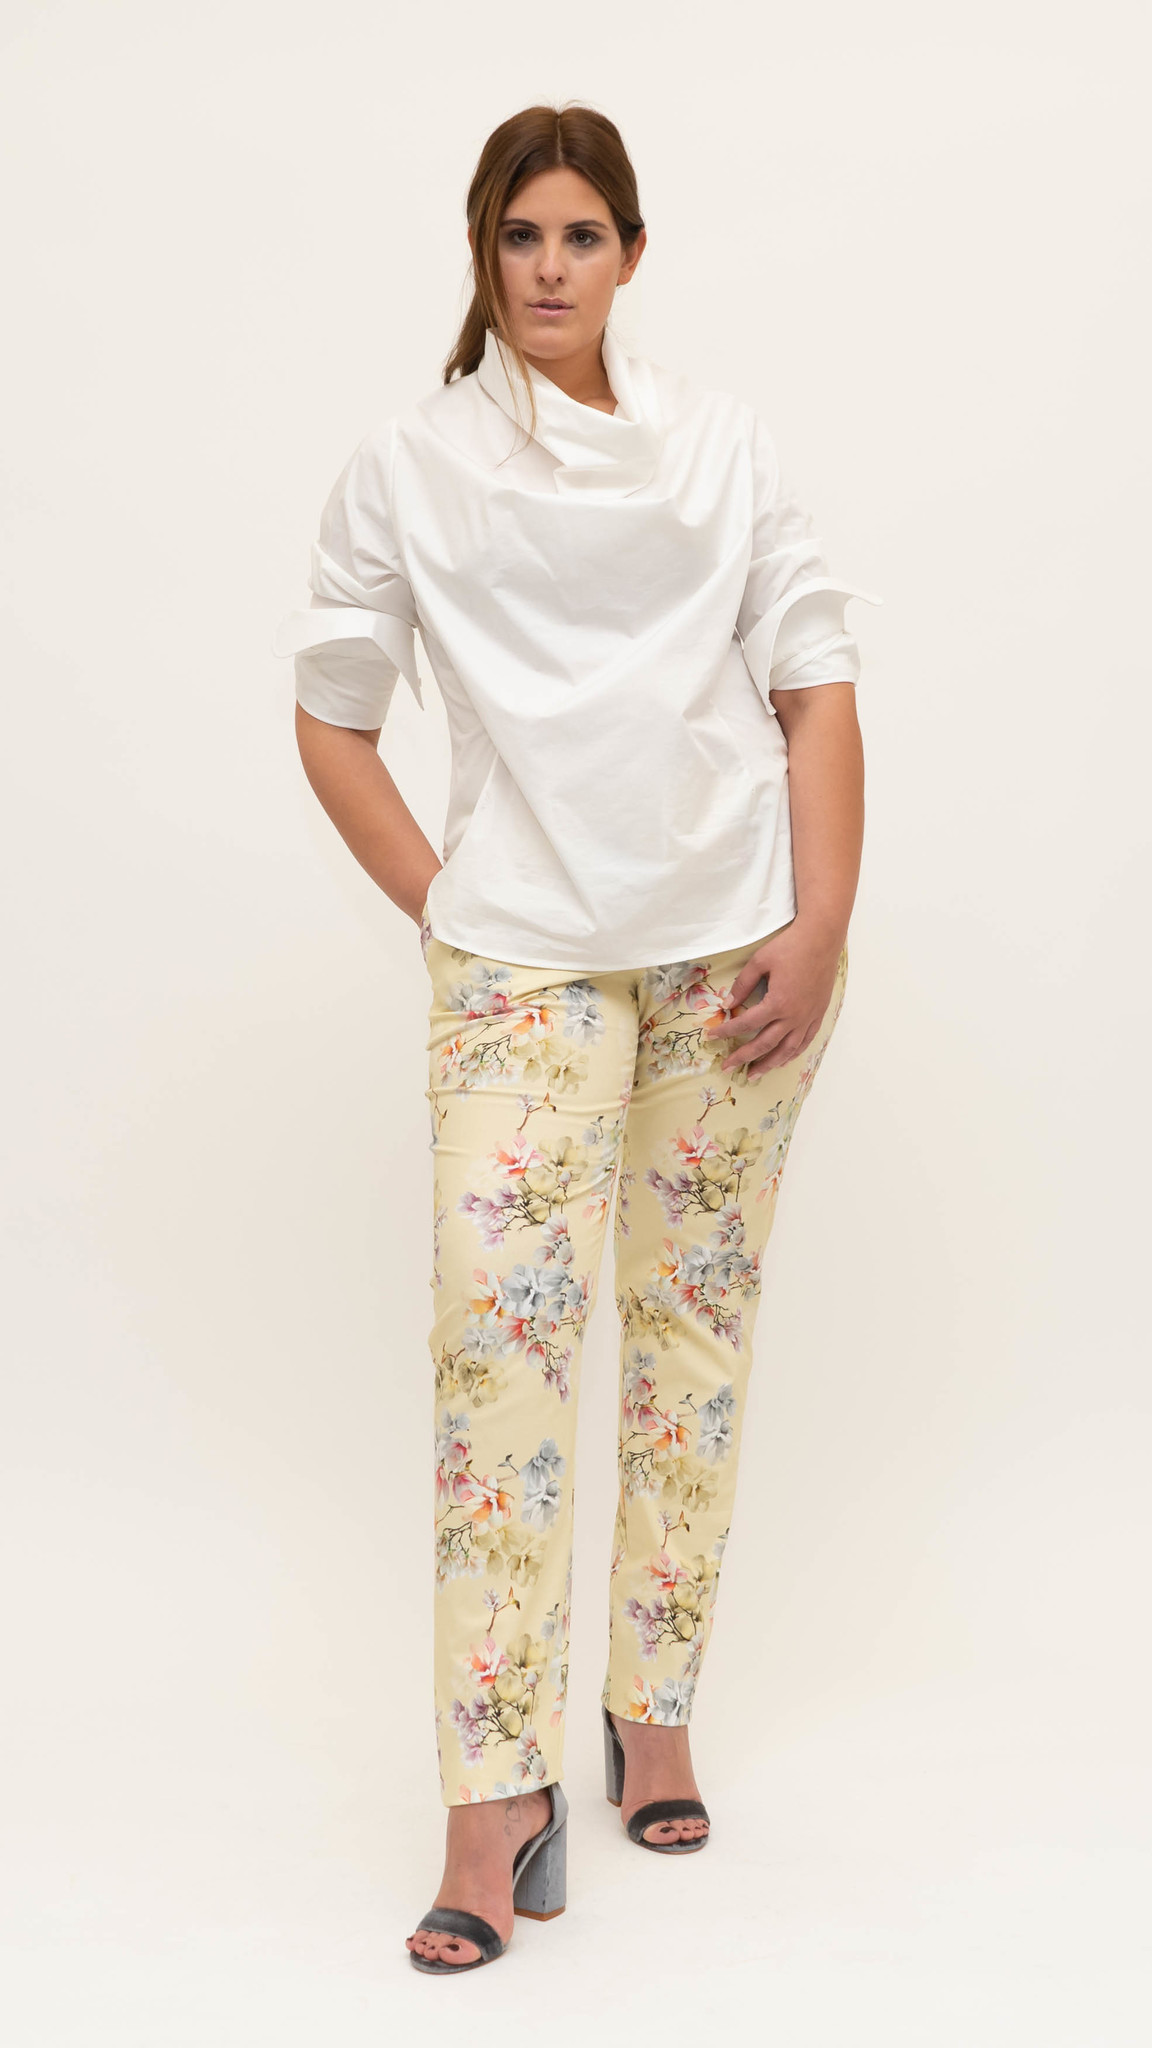 SHIRAZ Blouse in lightly crushed Cotton-3